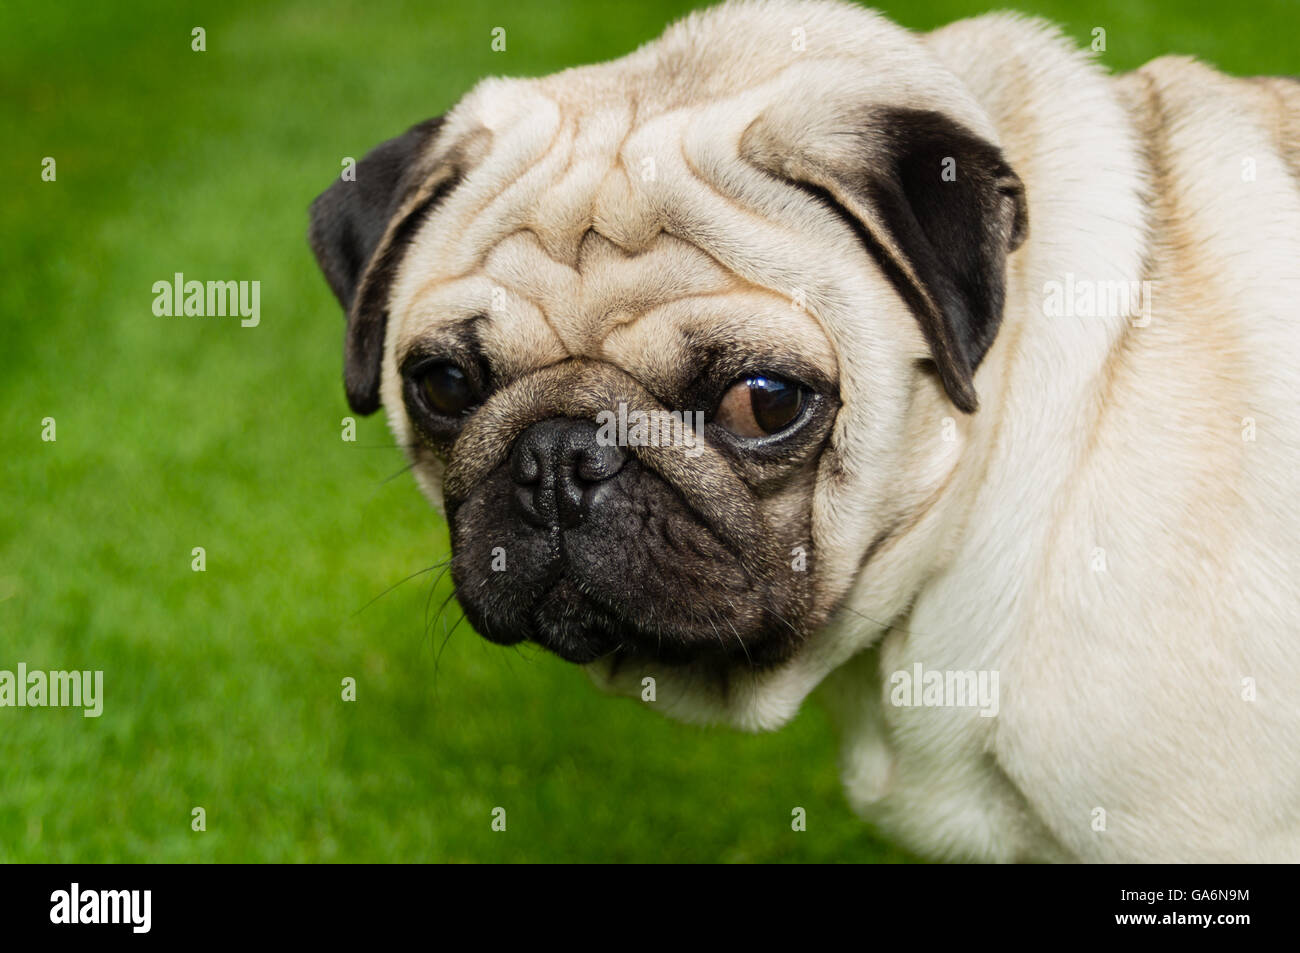 A pug dog outdoors on a lawn - Stock Image